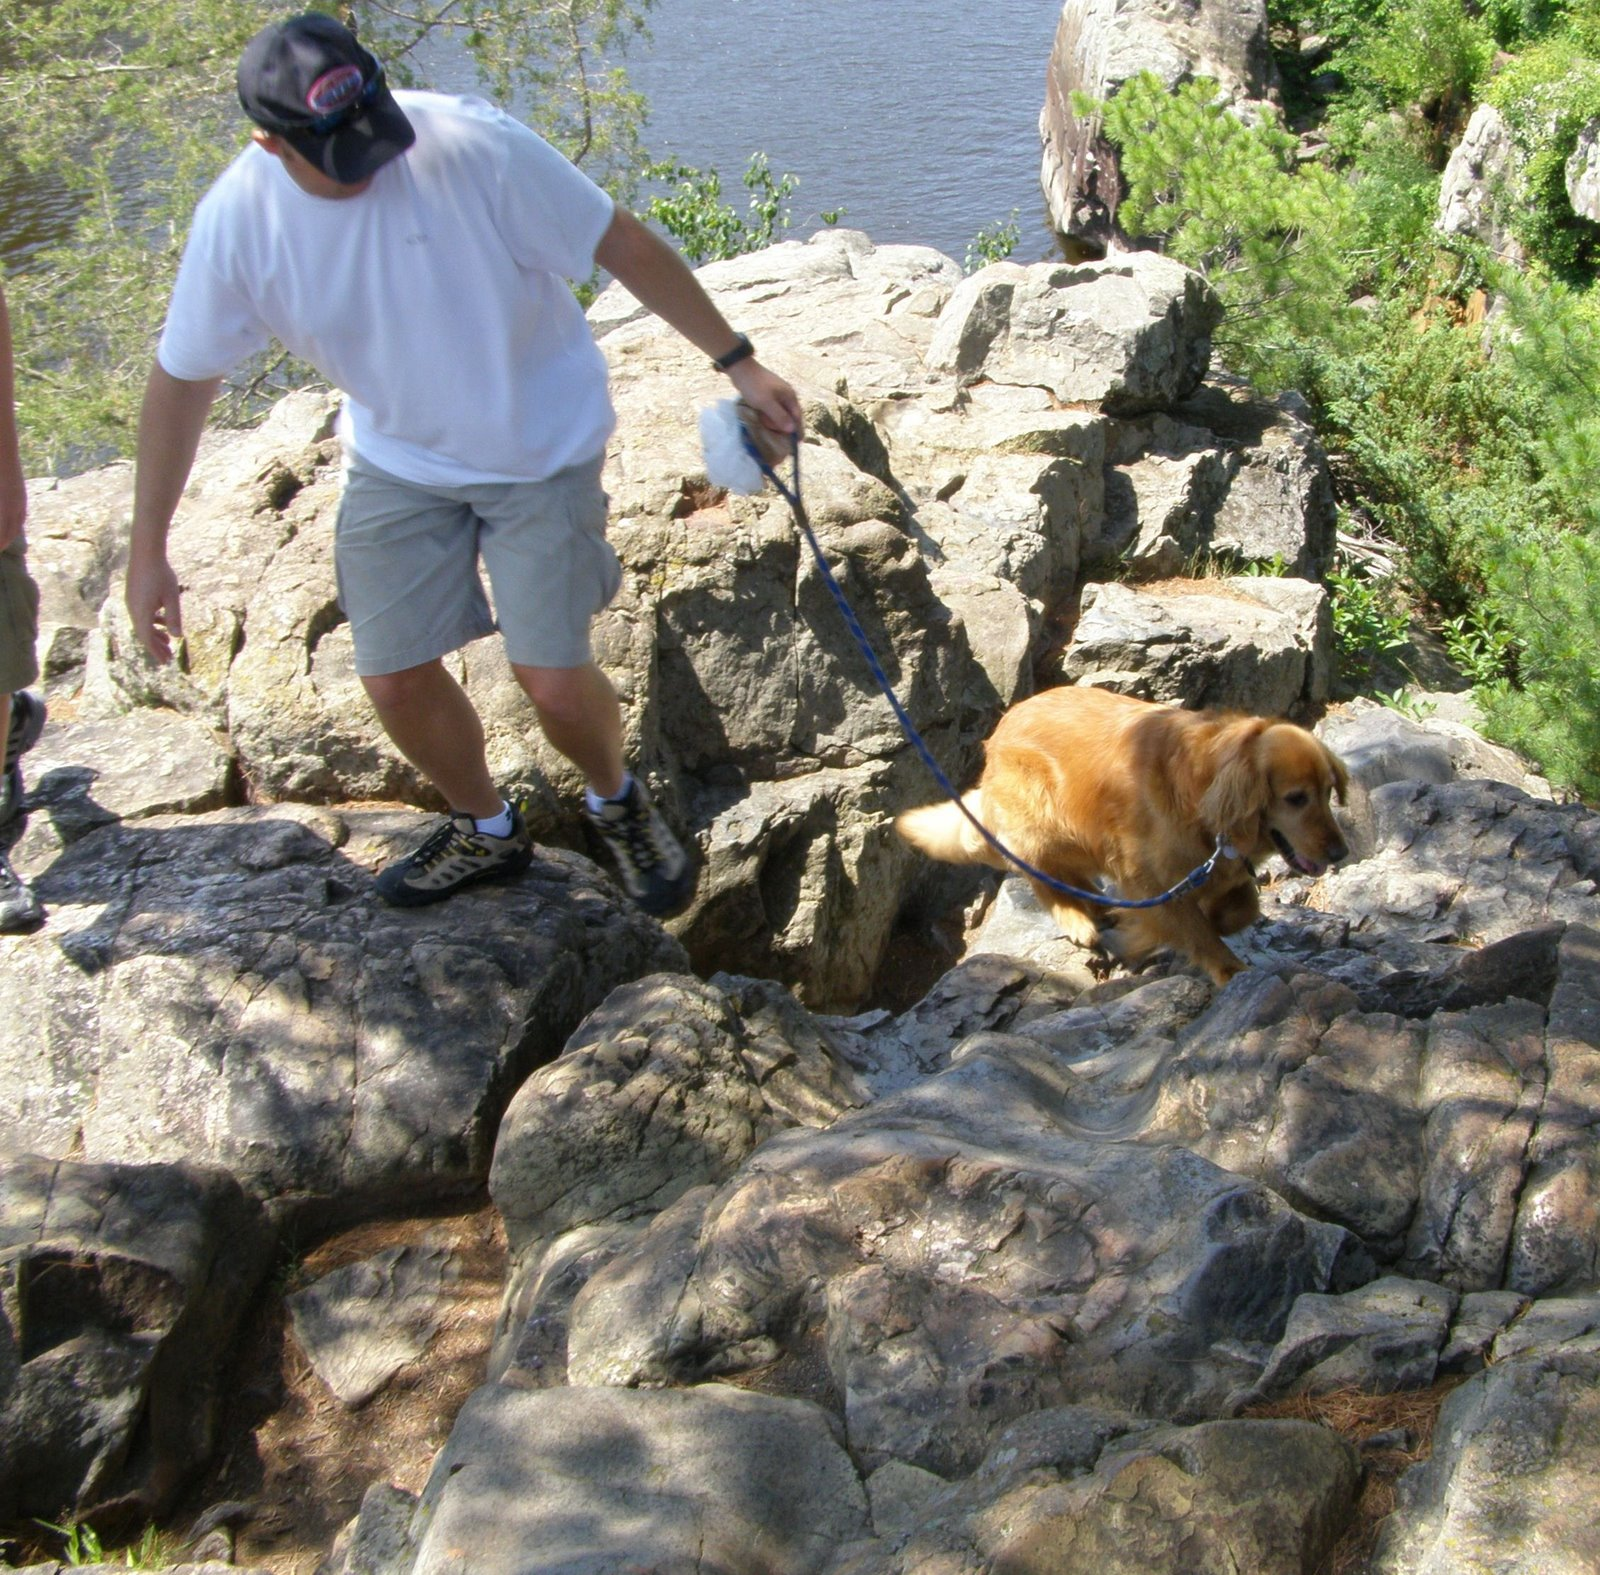 Rambling Traveler: Interstate State Park at Taylors Falls, Minnesota